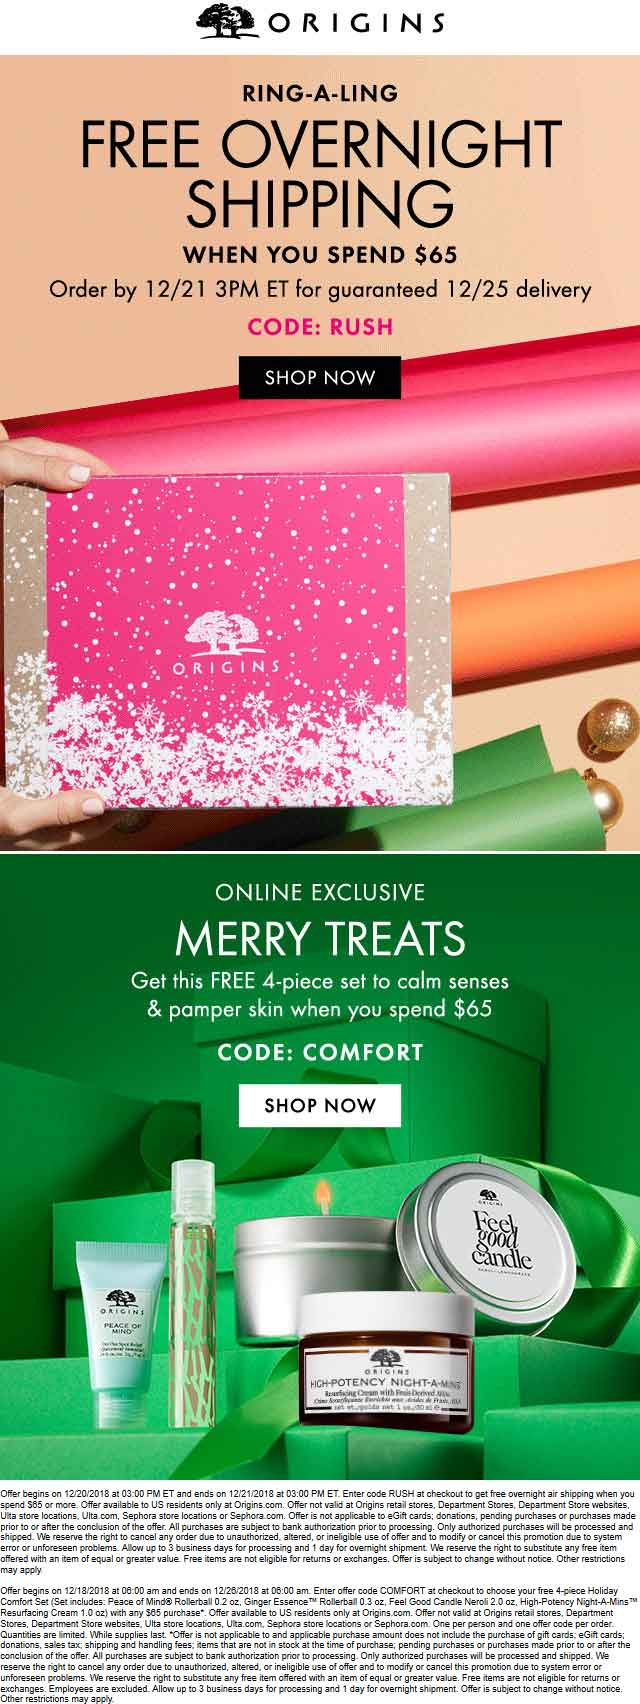 Origins Coupon May 2019 Free 4pc set & overnight shipping on $65 spent at Origins via promo codes COMFORT and RUSH